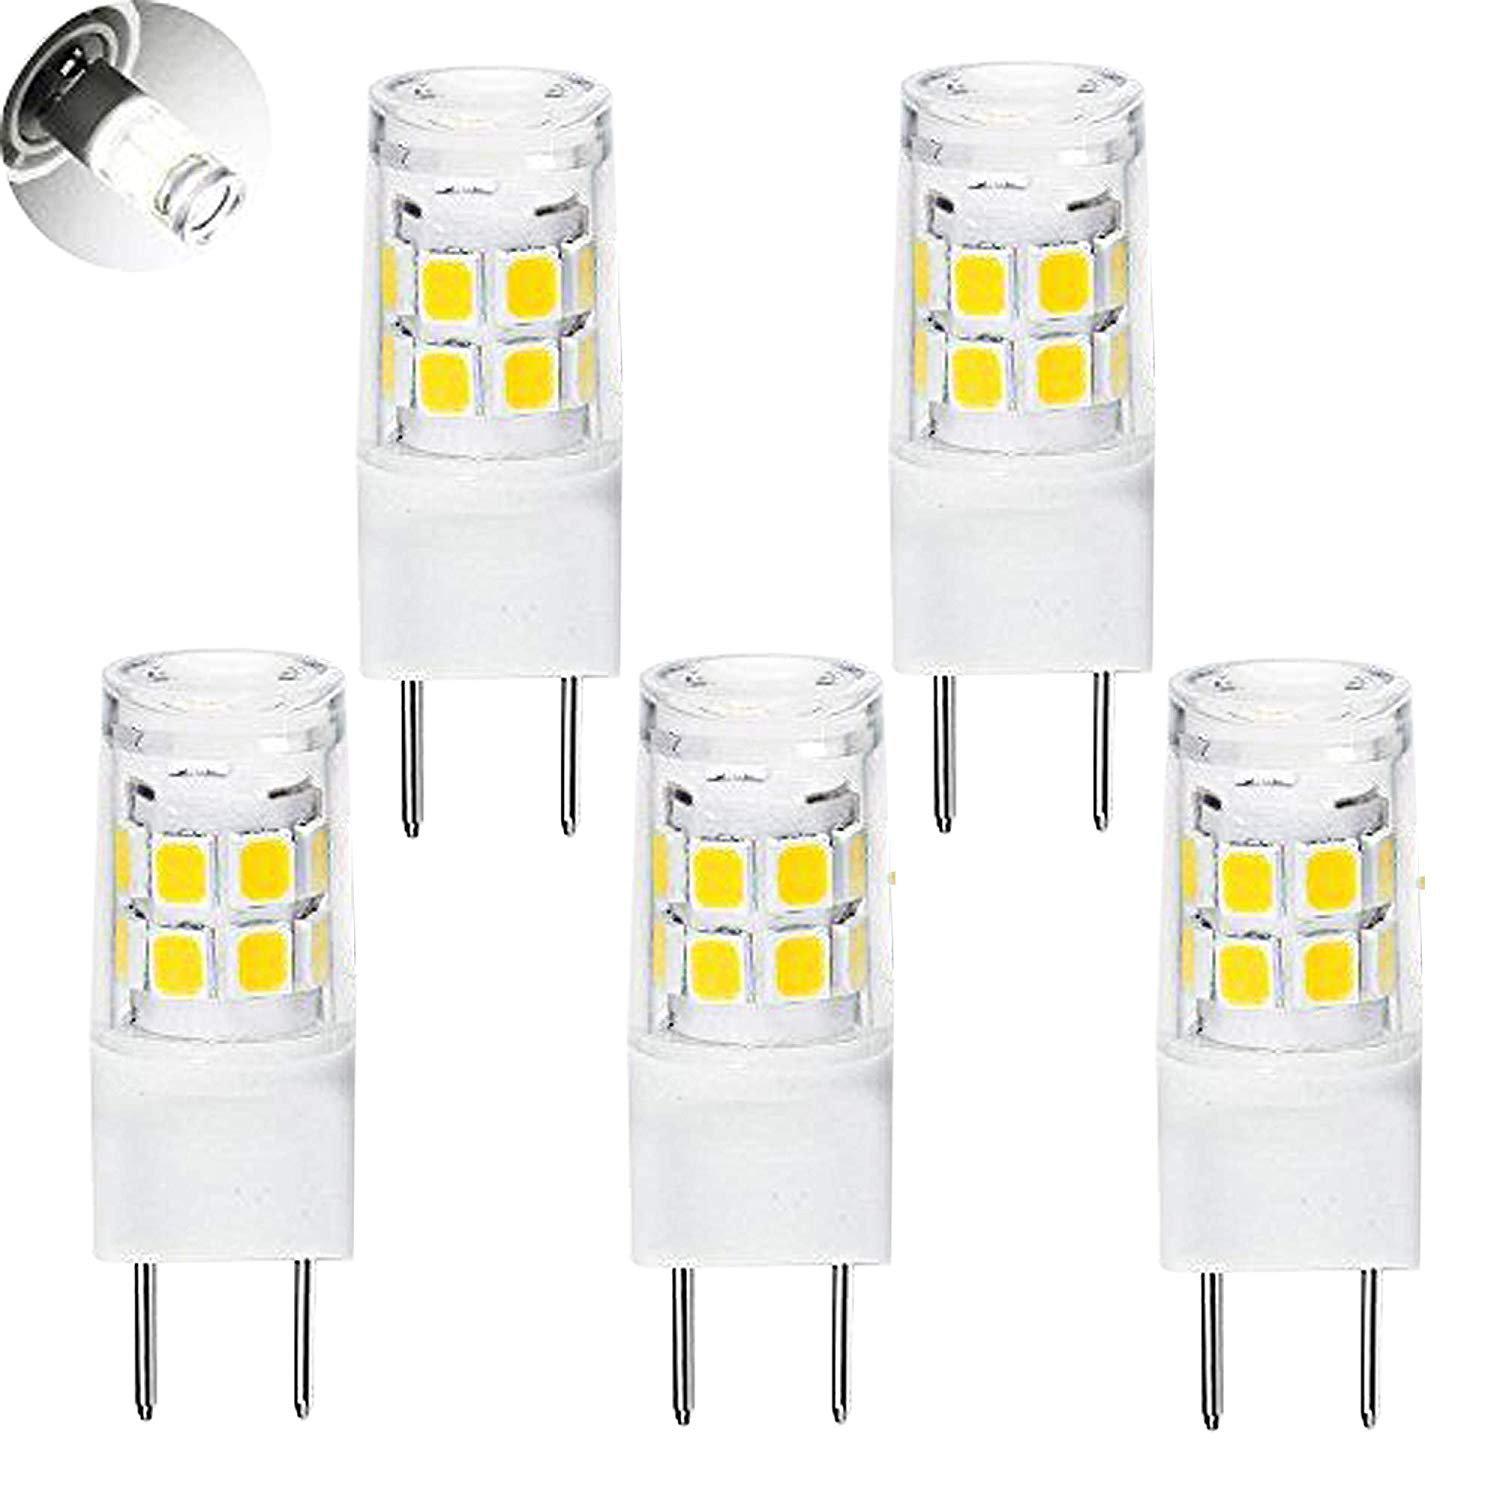 Hot Sale LED G8 Light Bulb, G8 GY8.6 Bi-pin Base LED, Not Dimmable T4 G8 Base Bi-pin Xenon JCD Type LED 120V (5-Pack) (G8 3W) все цены